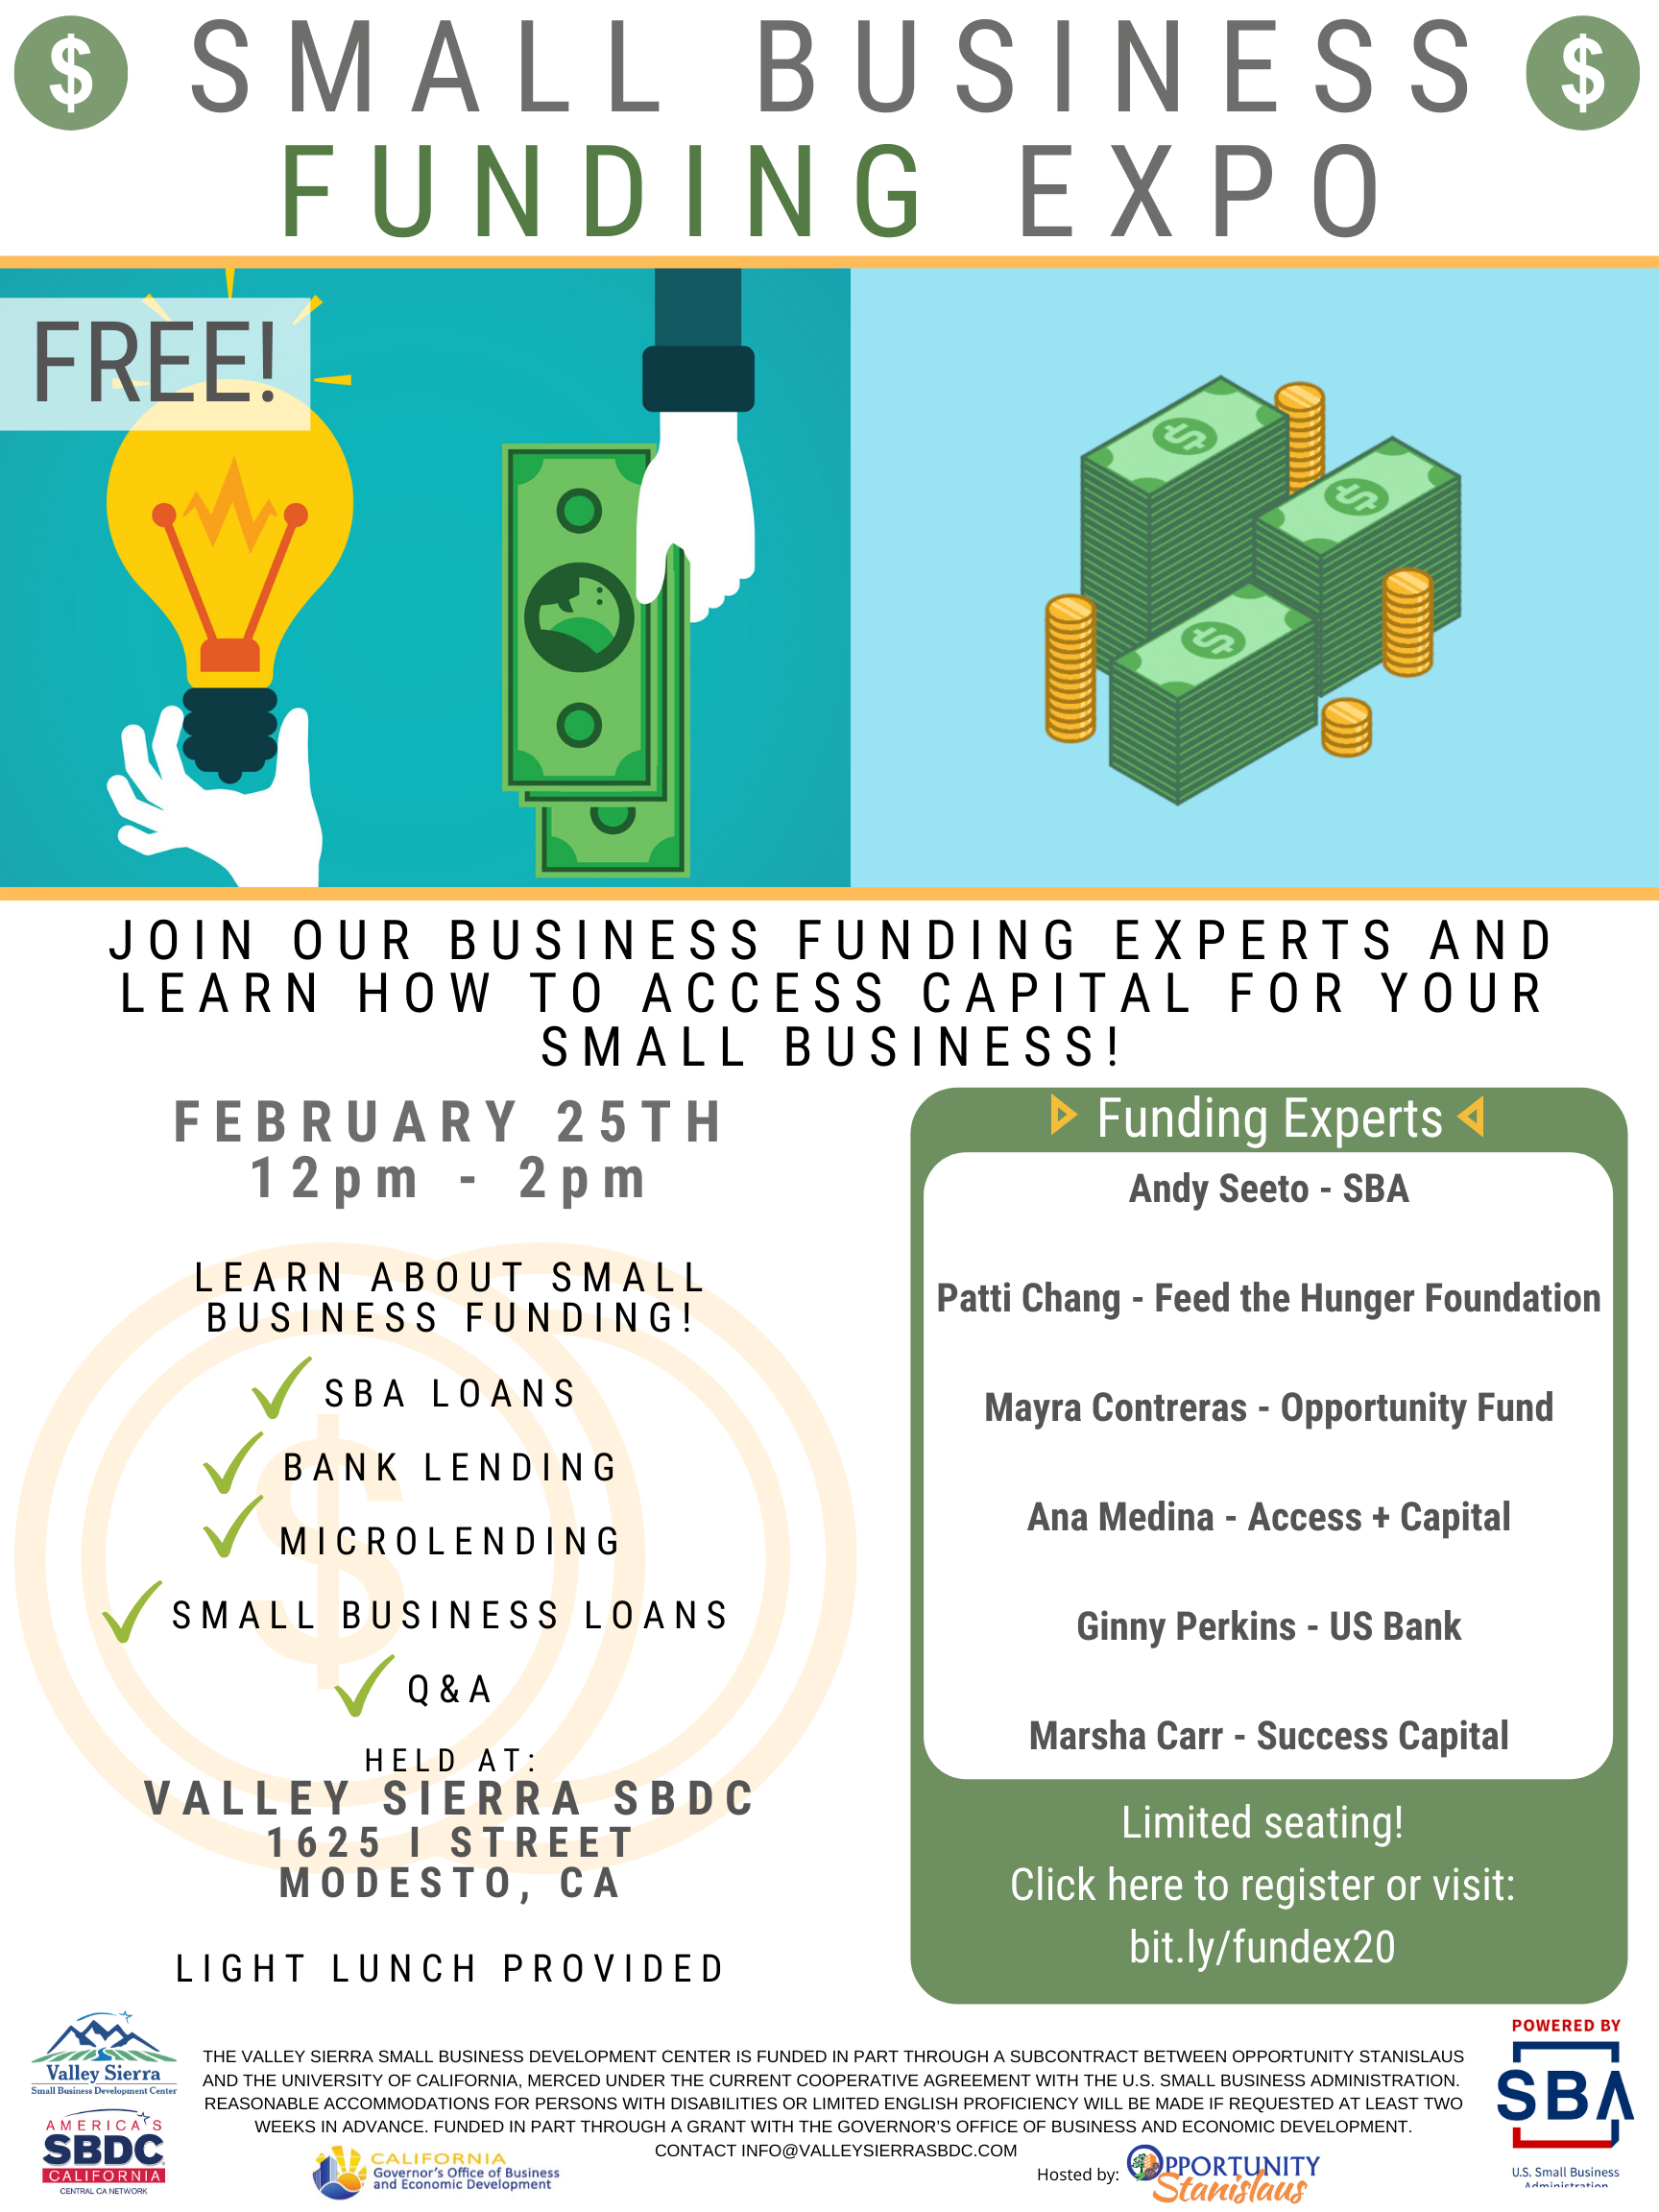 Event Flyer, Small Business Funding Expo, Feb 25th, Free. At the Valley Sierra SBDC.